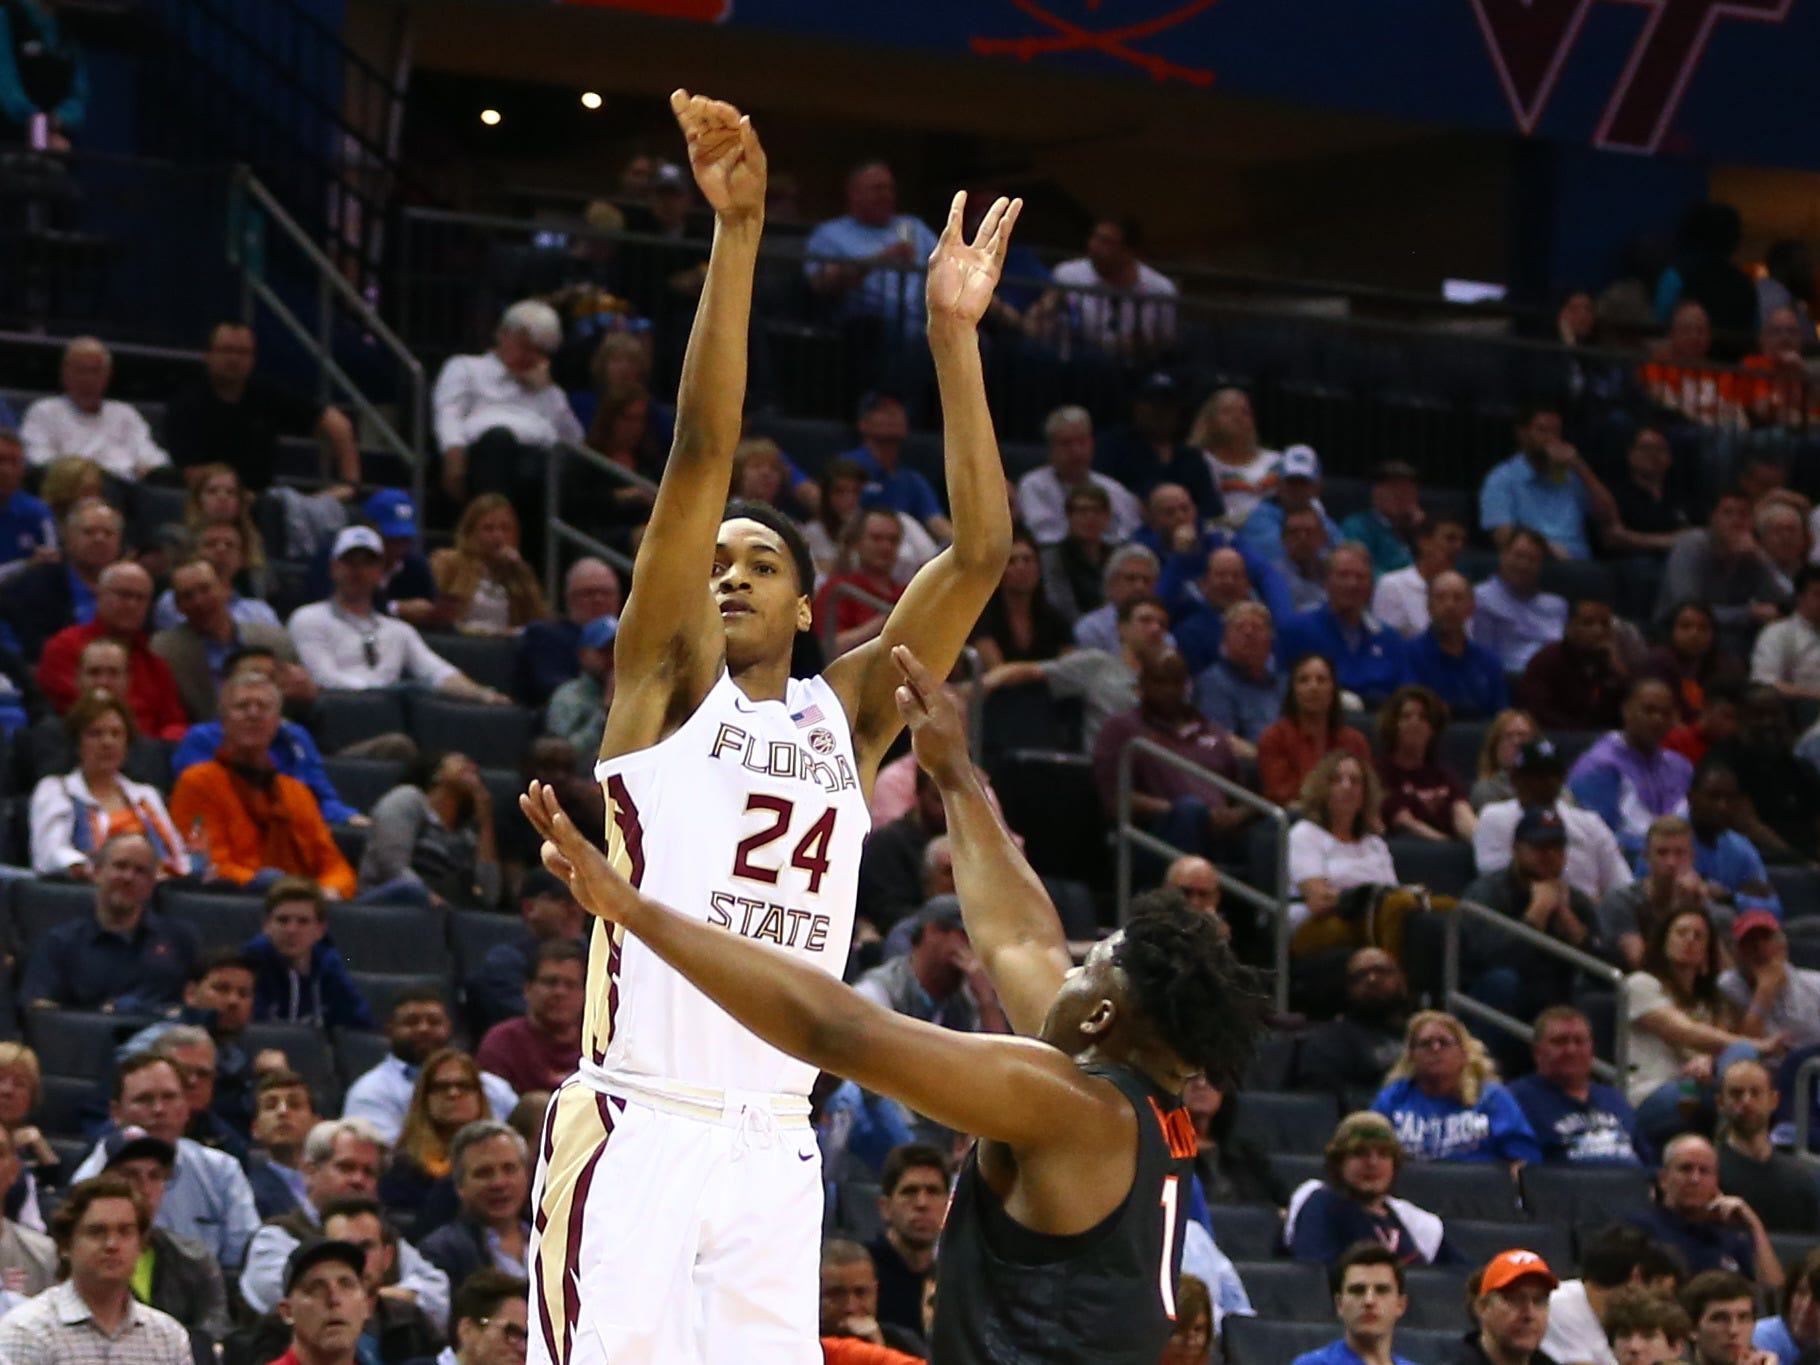 Mar 14, 2019; Charlotte, NC, USA; Florida State Seminoles guard Devin Vassell (24) shoots a three-point basket against Virginia Tech Hokies guard Isaiah Wilkins (1) in the first half in the ACC conference tournament at Spectrum Center. Mandatory Credit: Jeremy Brevard-USA TODAY Sports